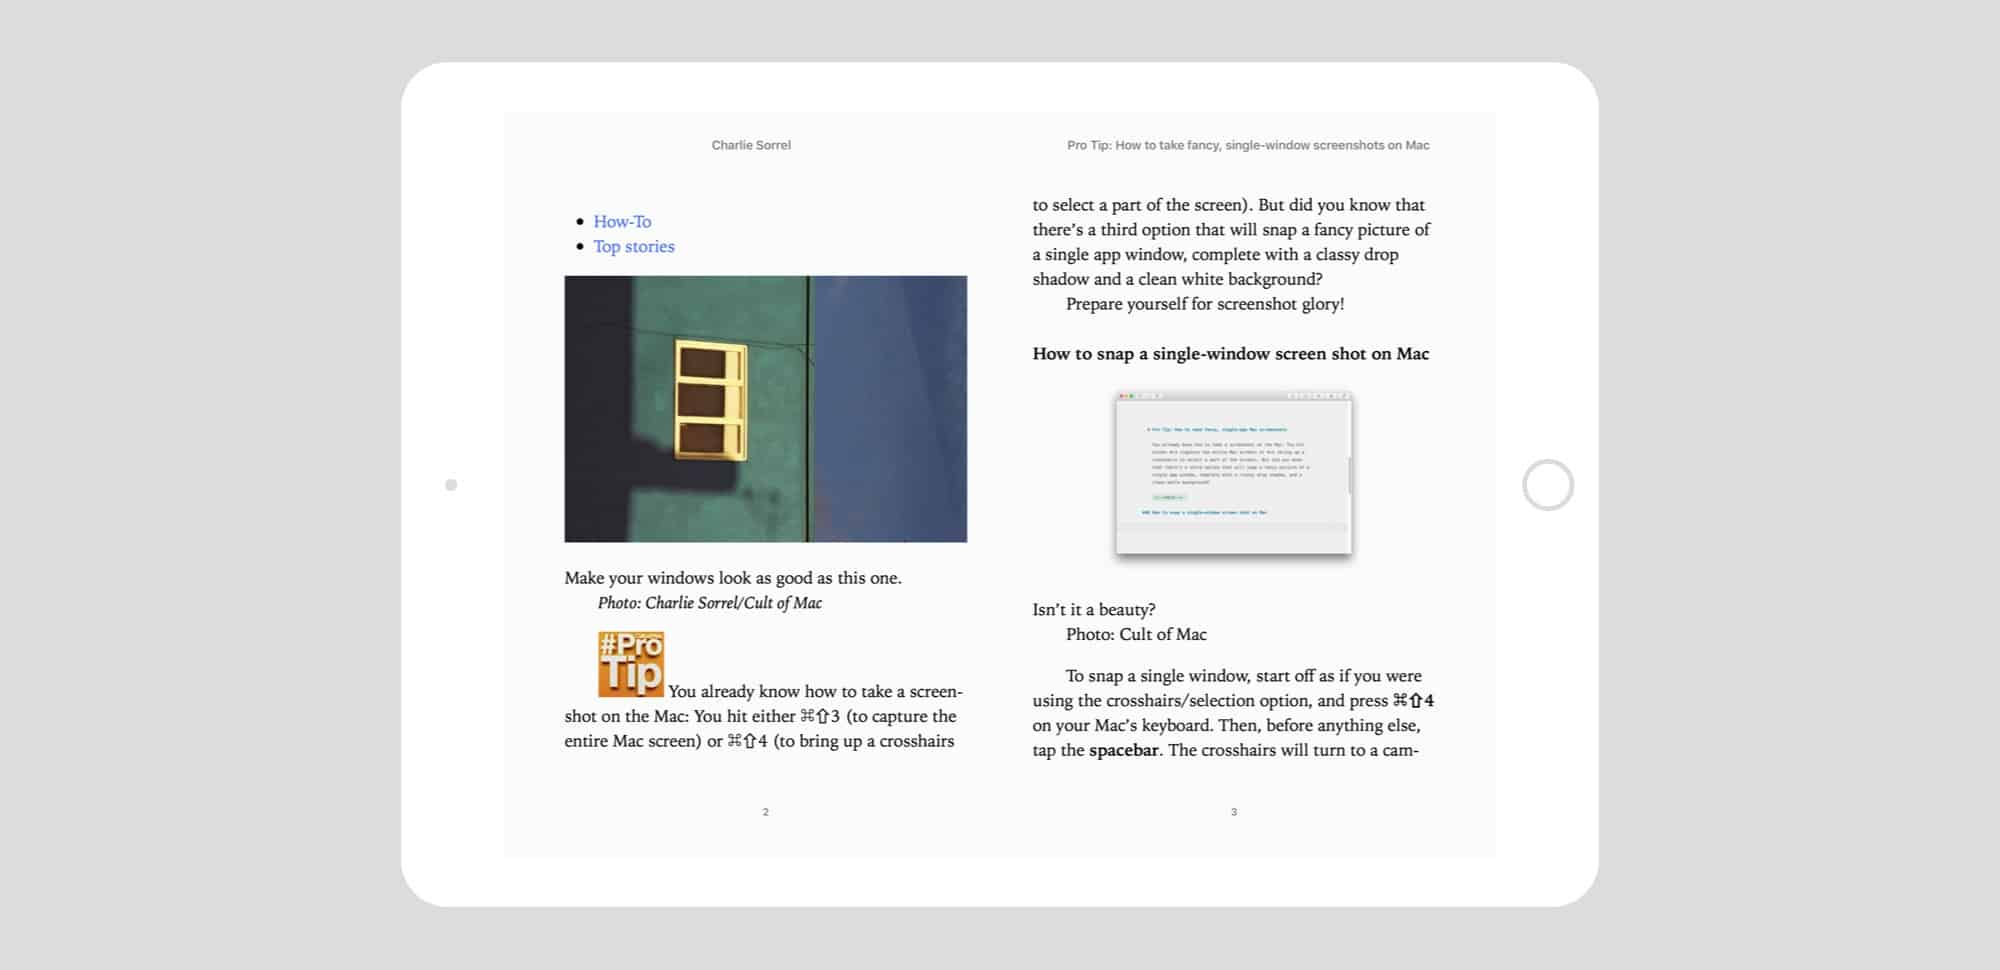 dotEPUB converts web pages into EPUB documents like this.